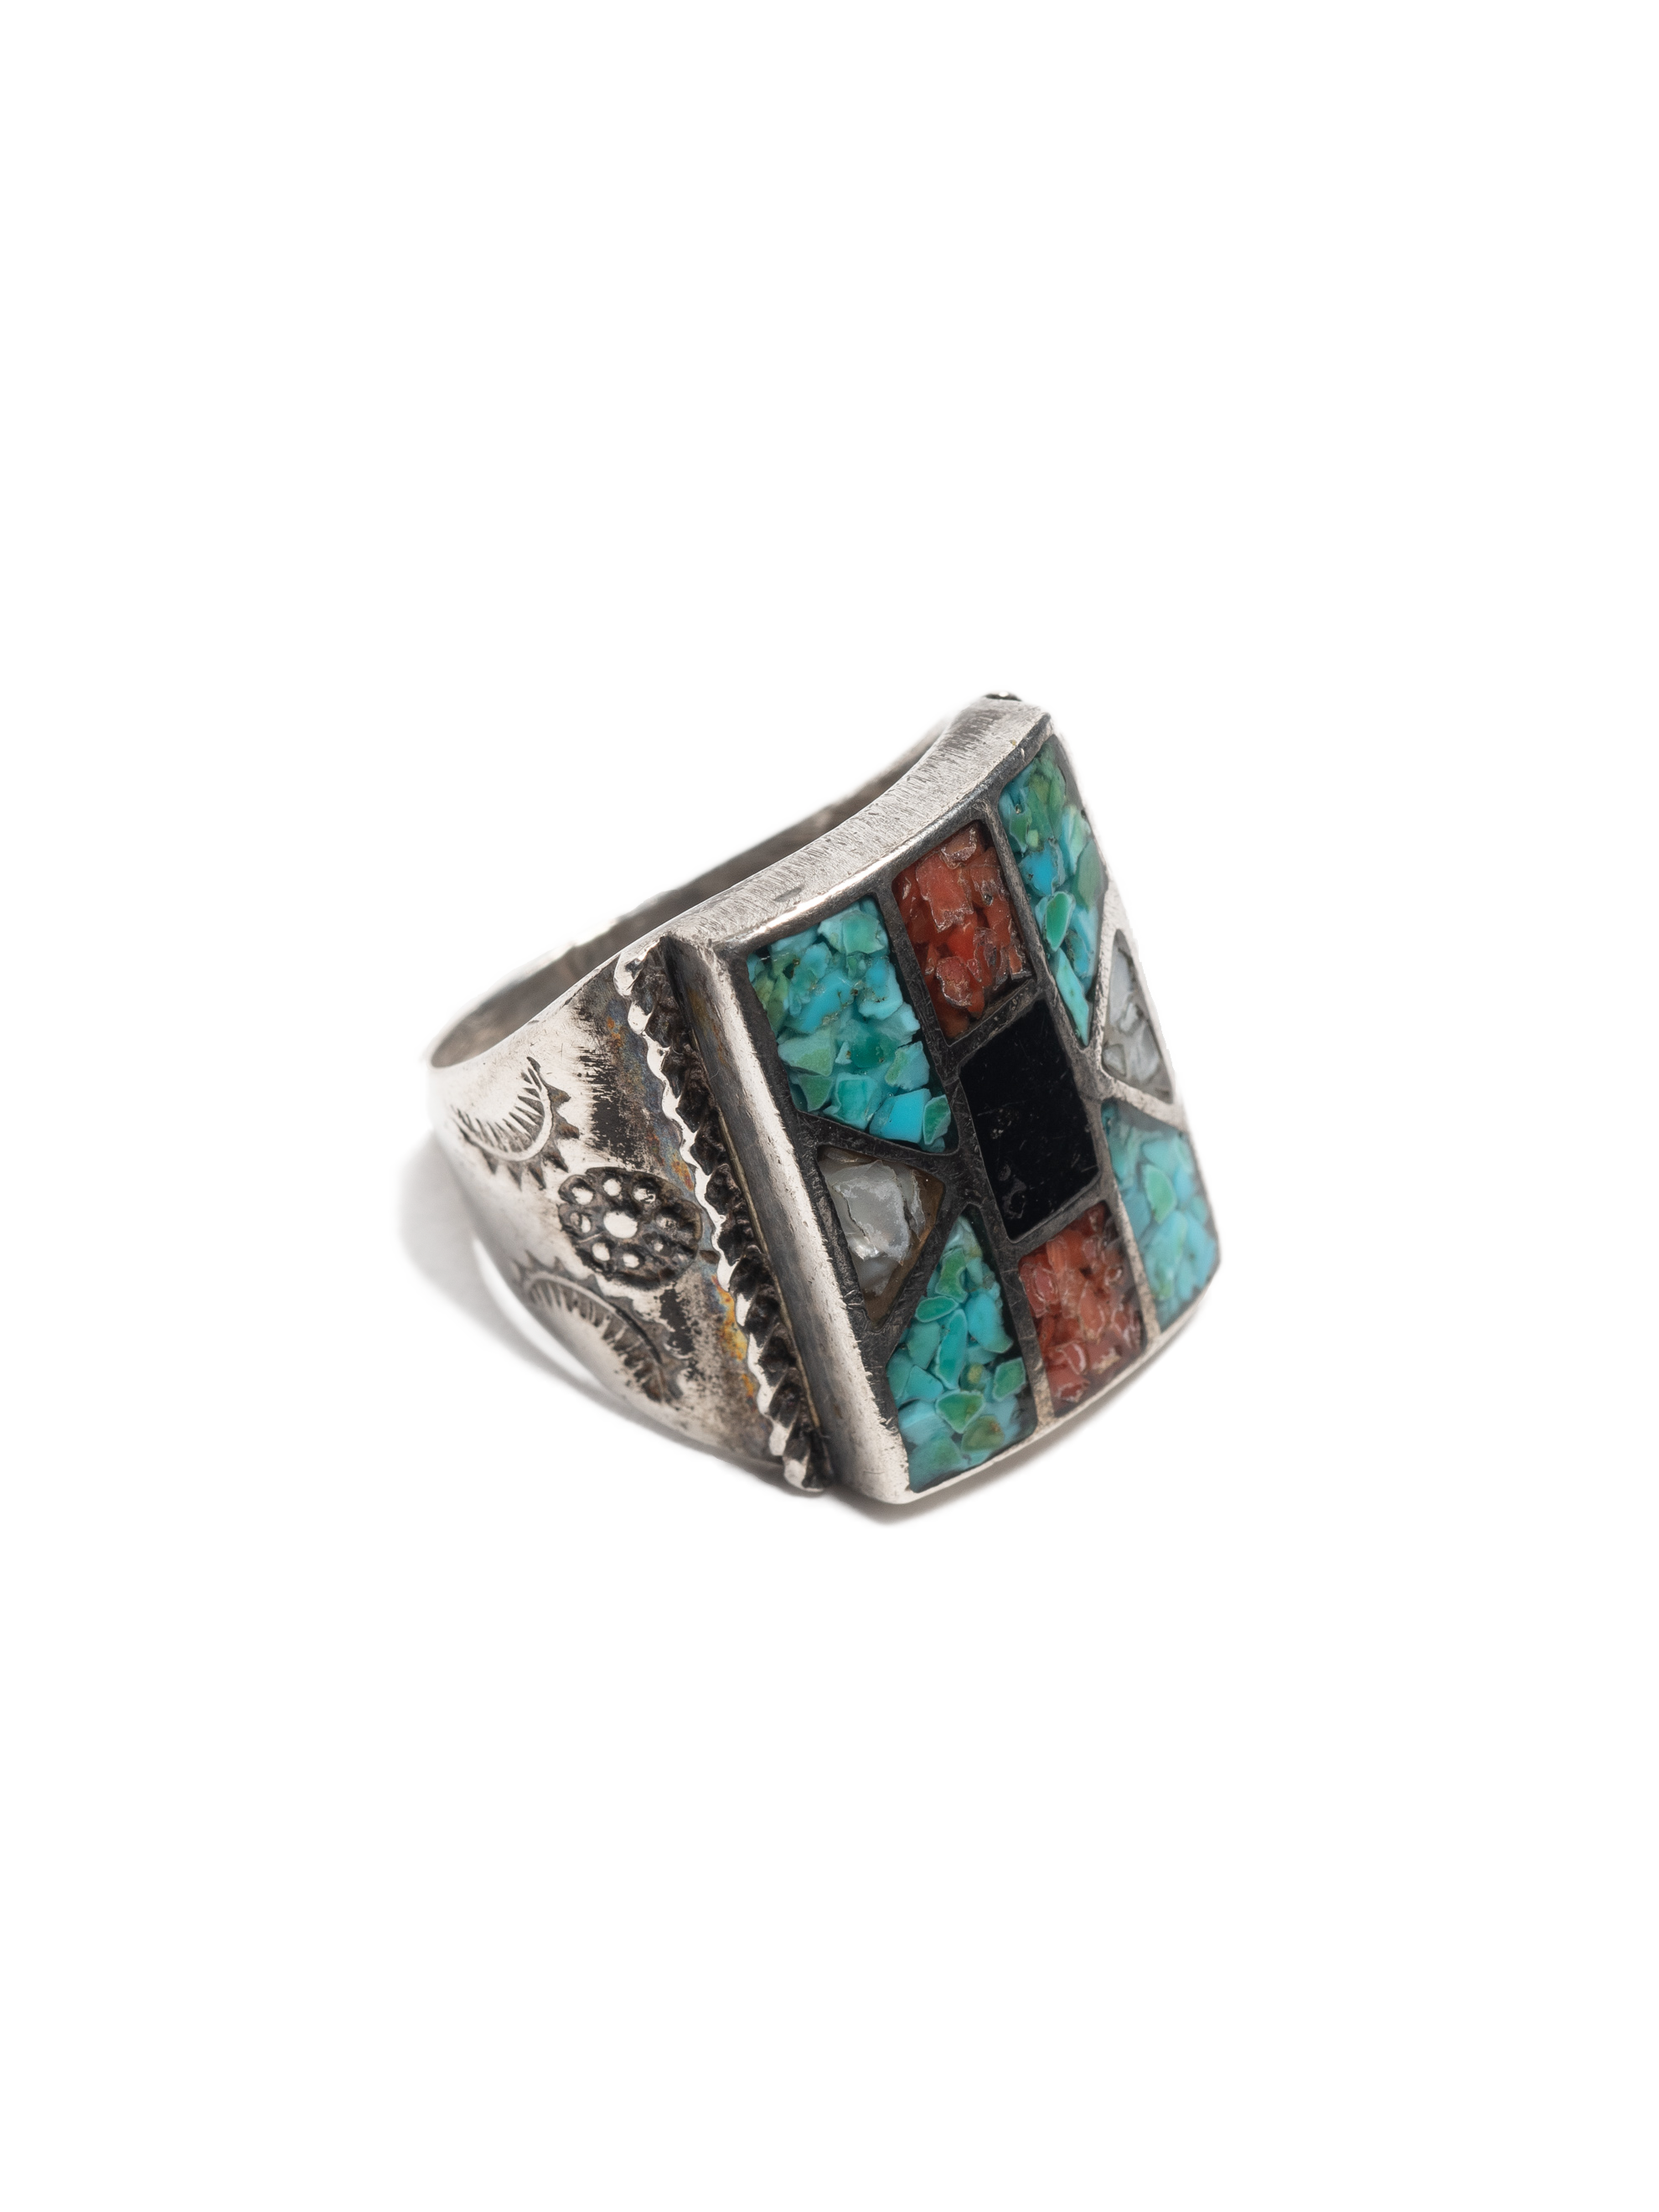 Sterling Silver Vintage Zuni Sterling Silver Ring with chipped turquoise, coral, jet & mop inlay 1